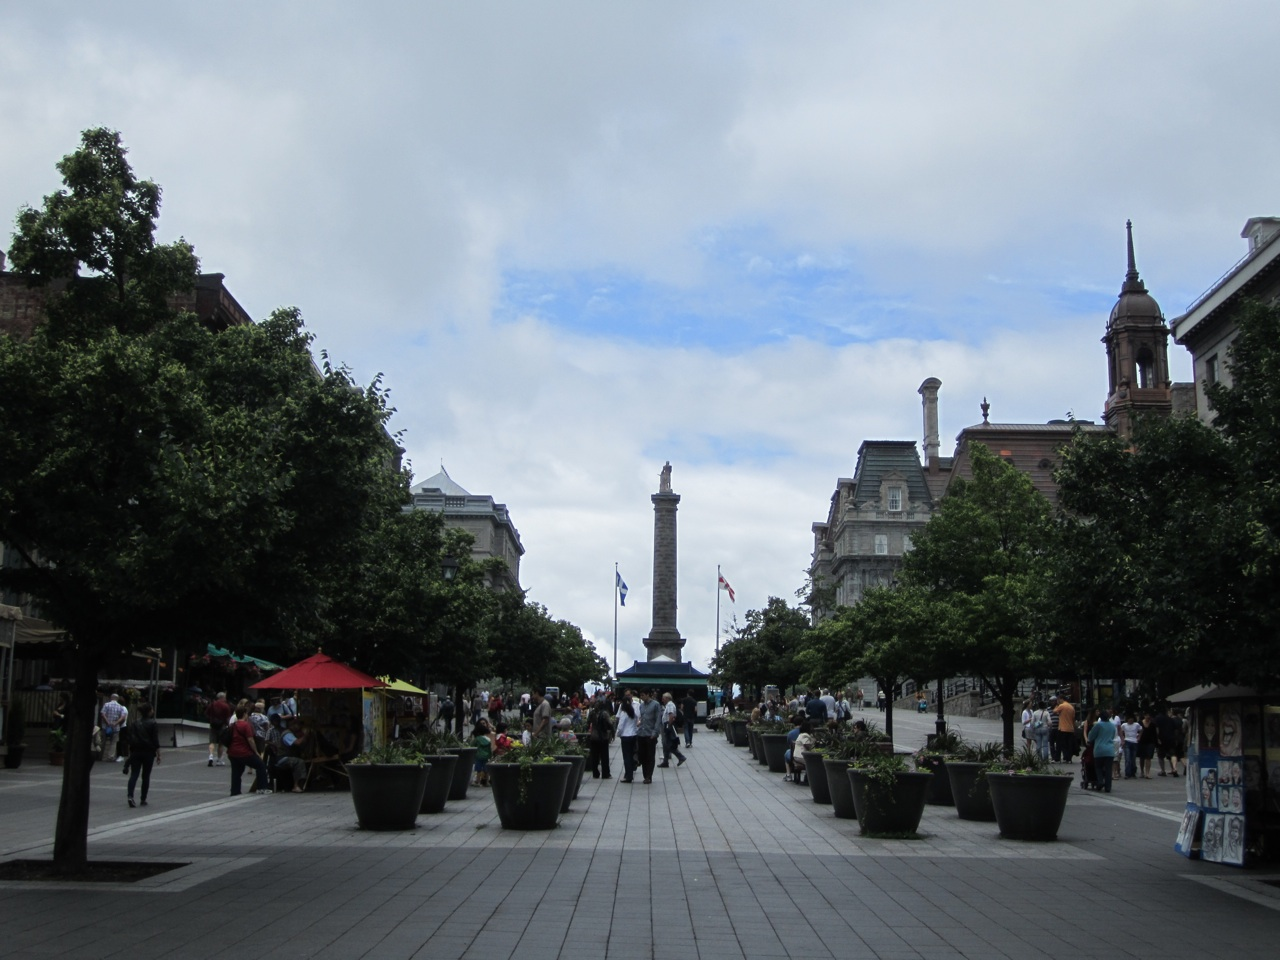 A Central Square In Old Montreal